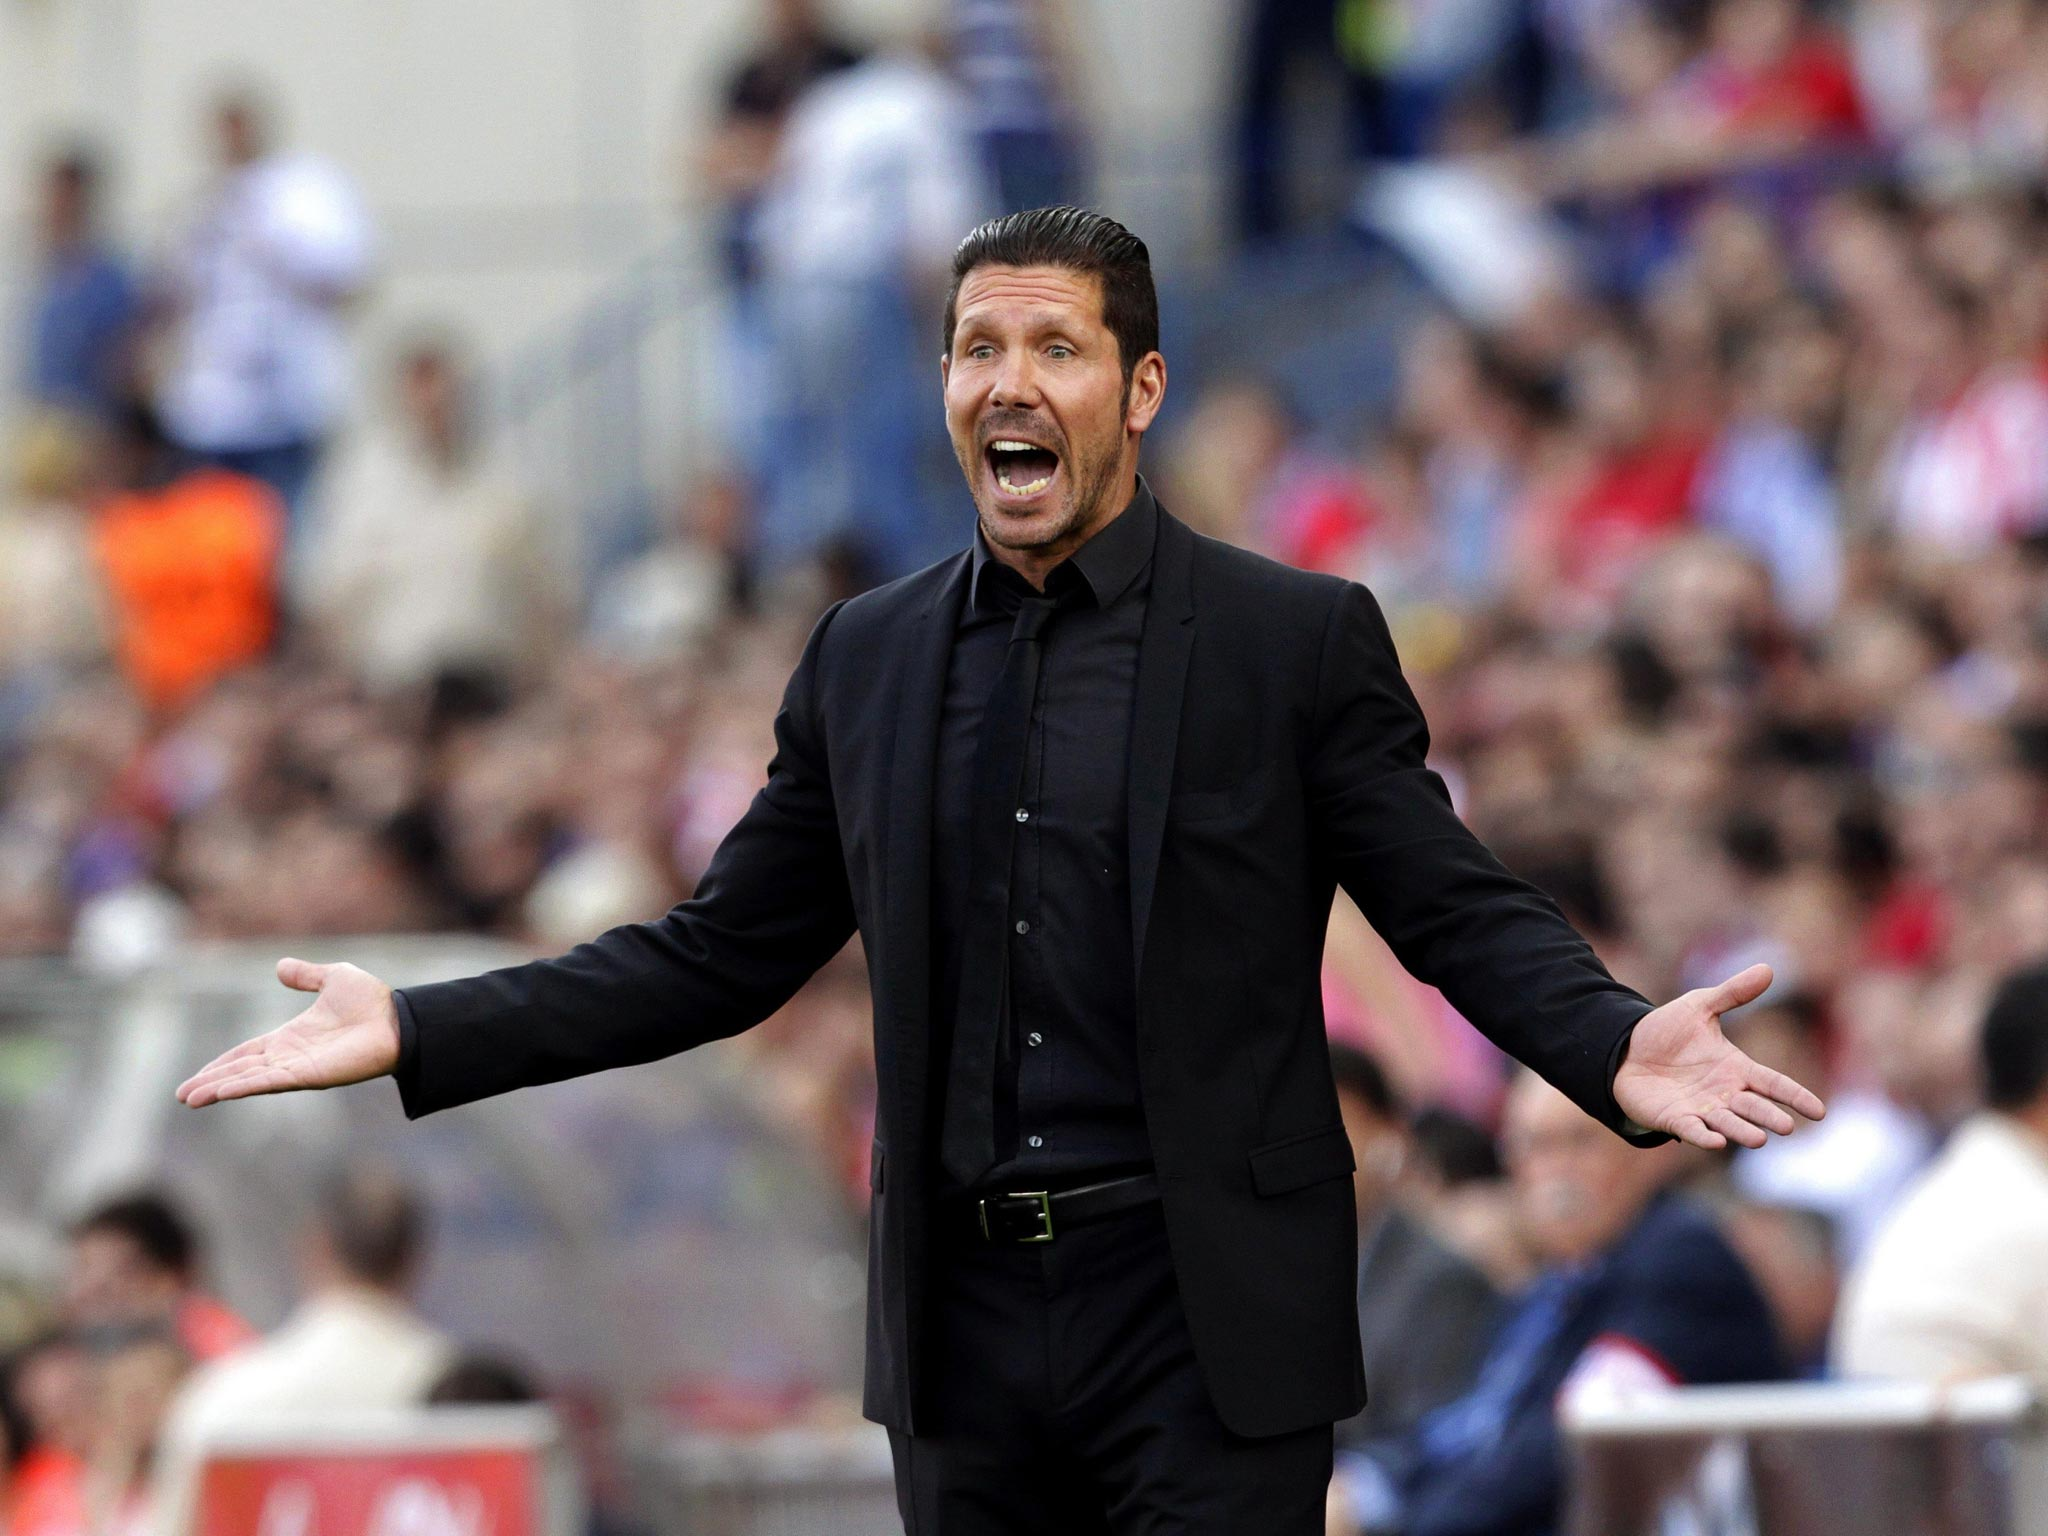 Animated Hd Wallpapers For Laptop Diego Simeone Wallpaper